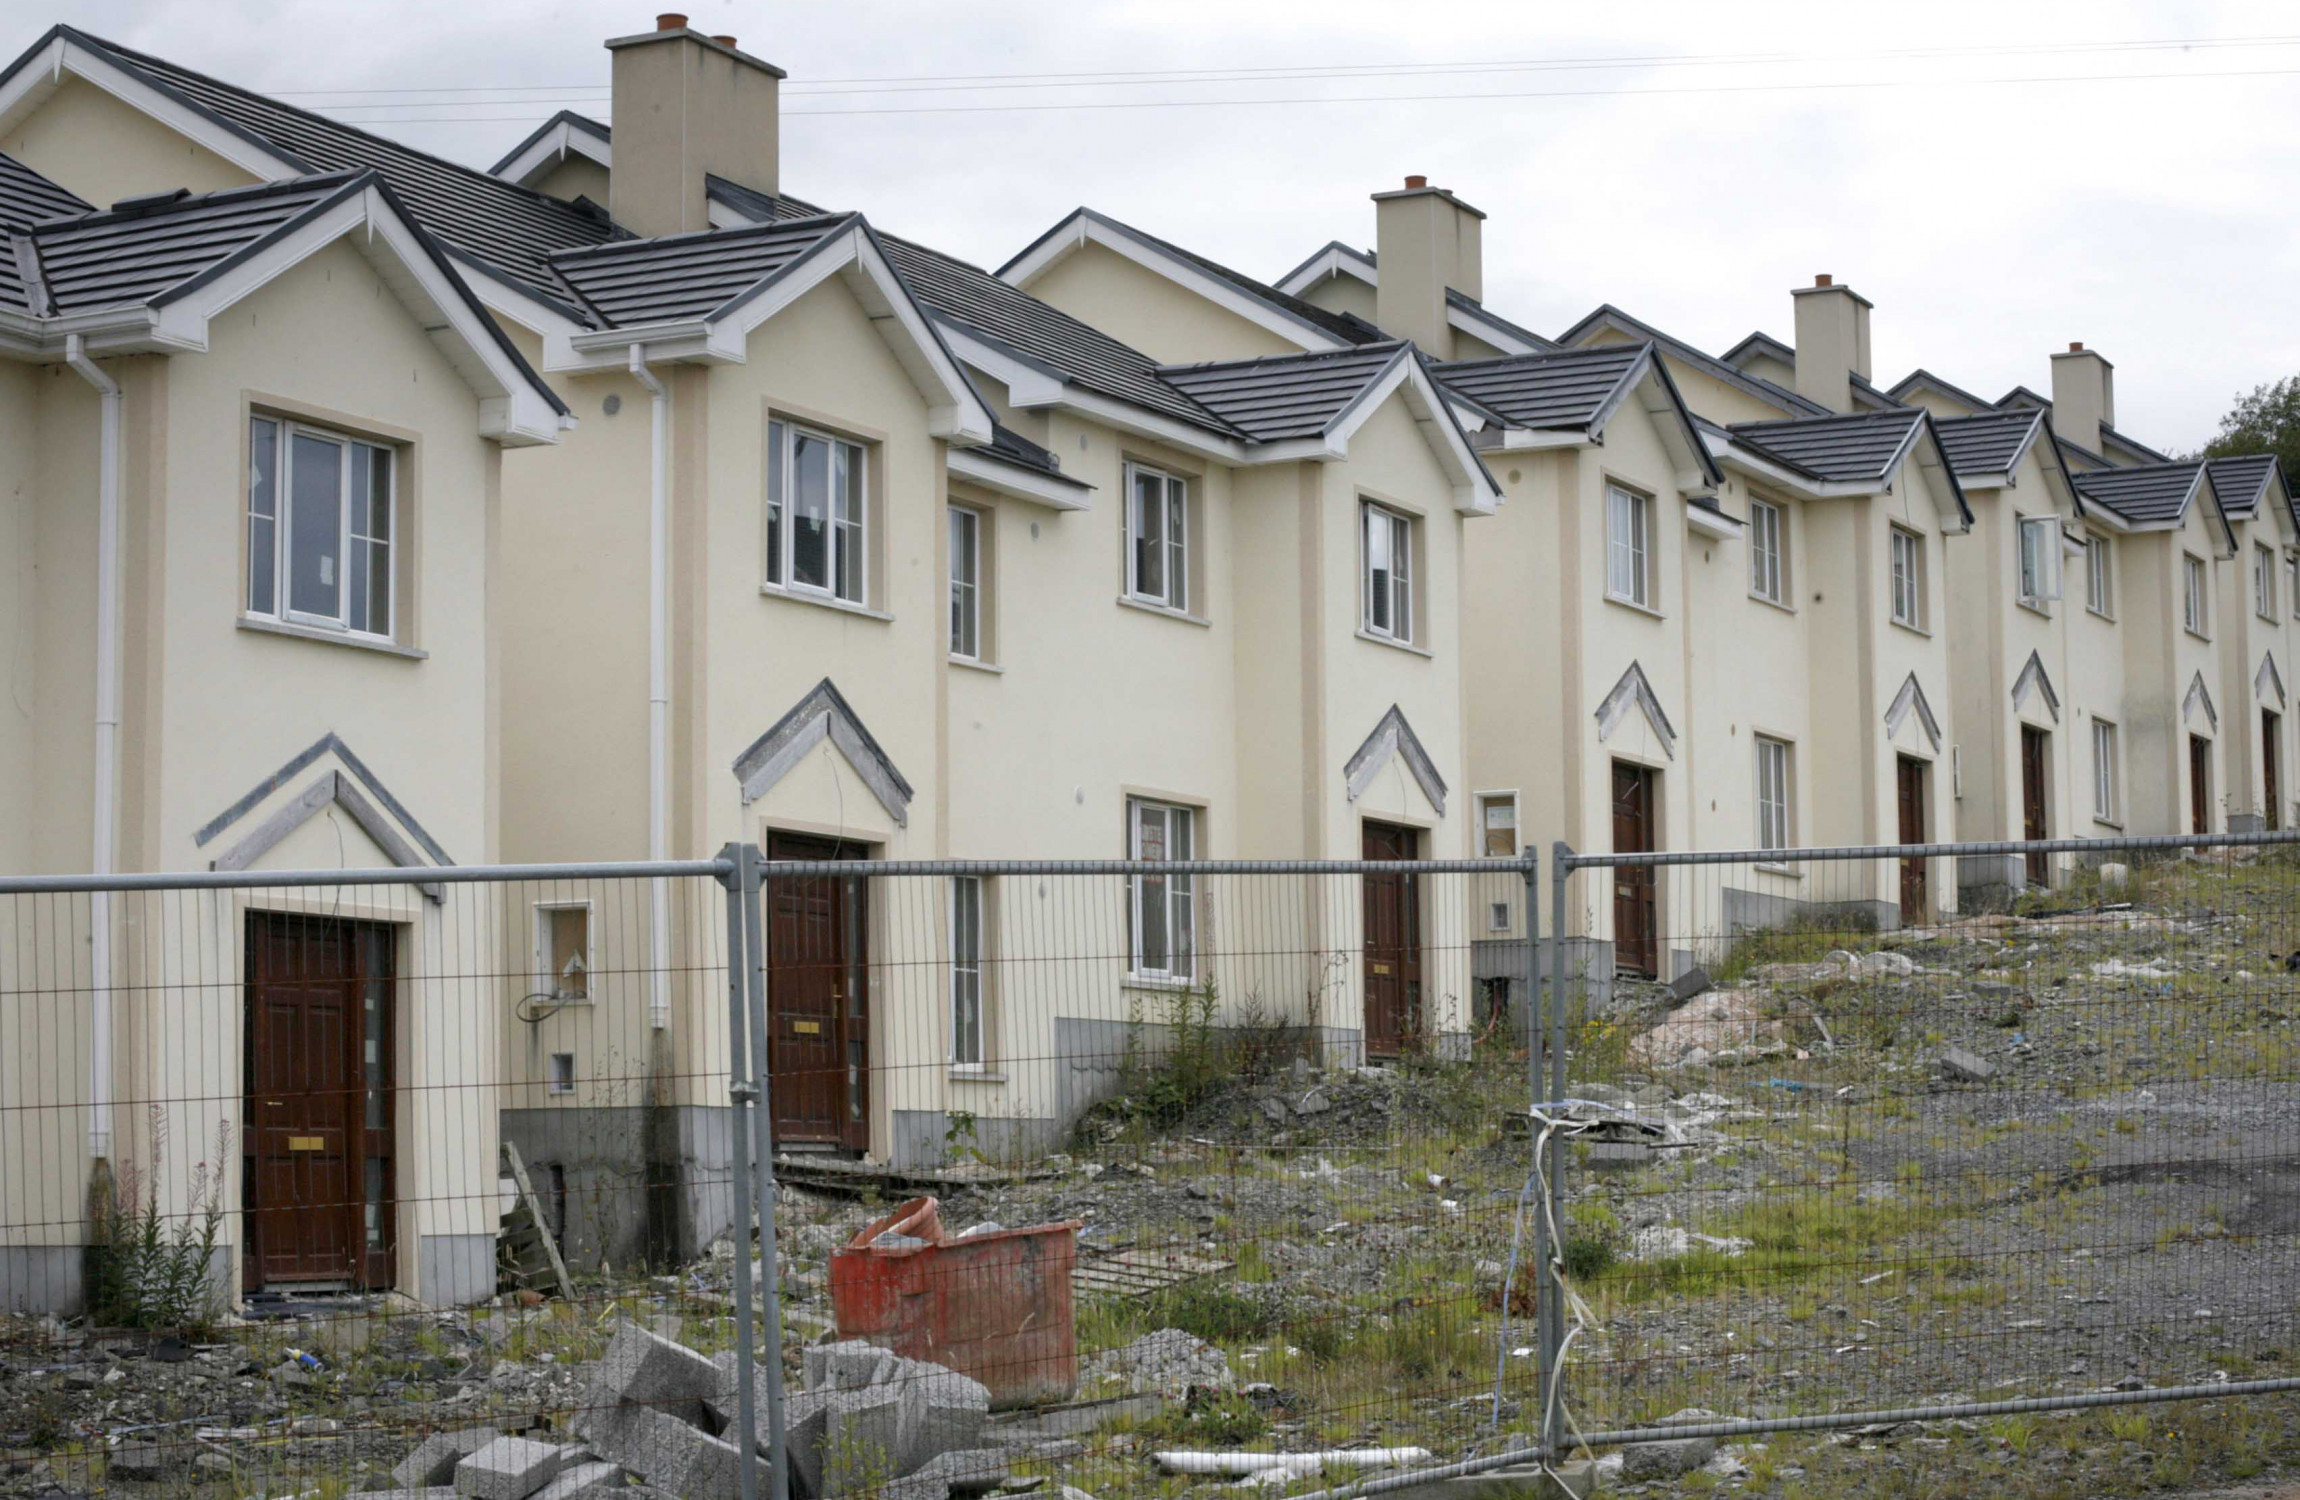 Vacant homes unit to tackle crisis